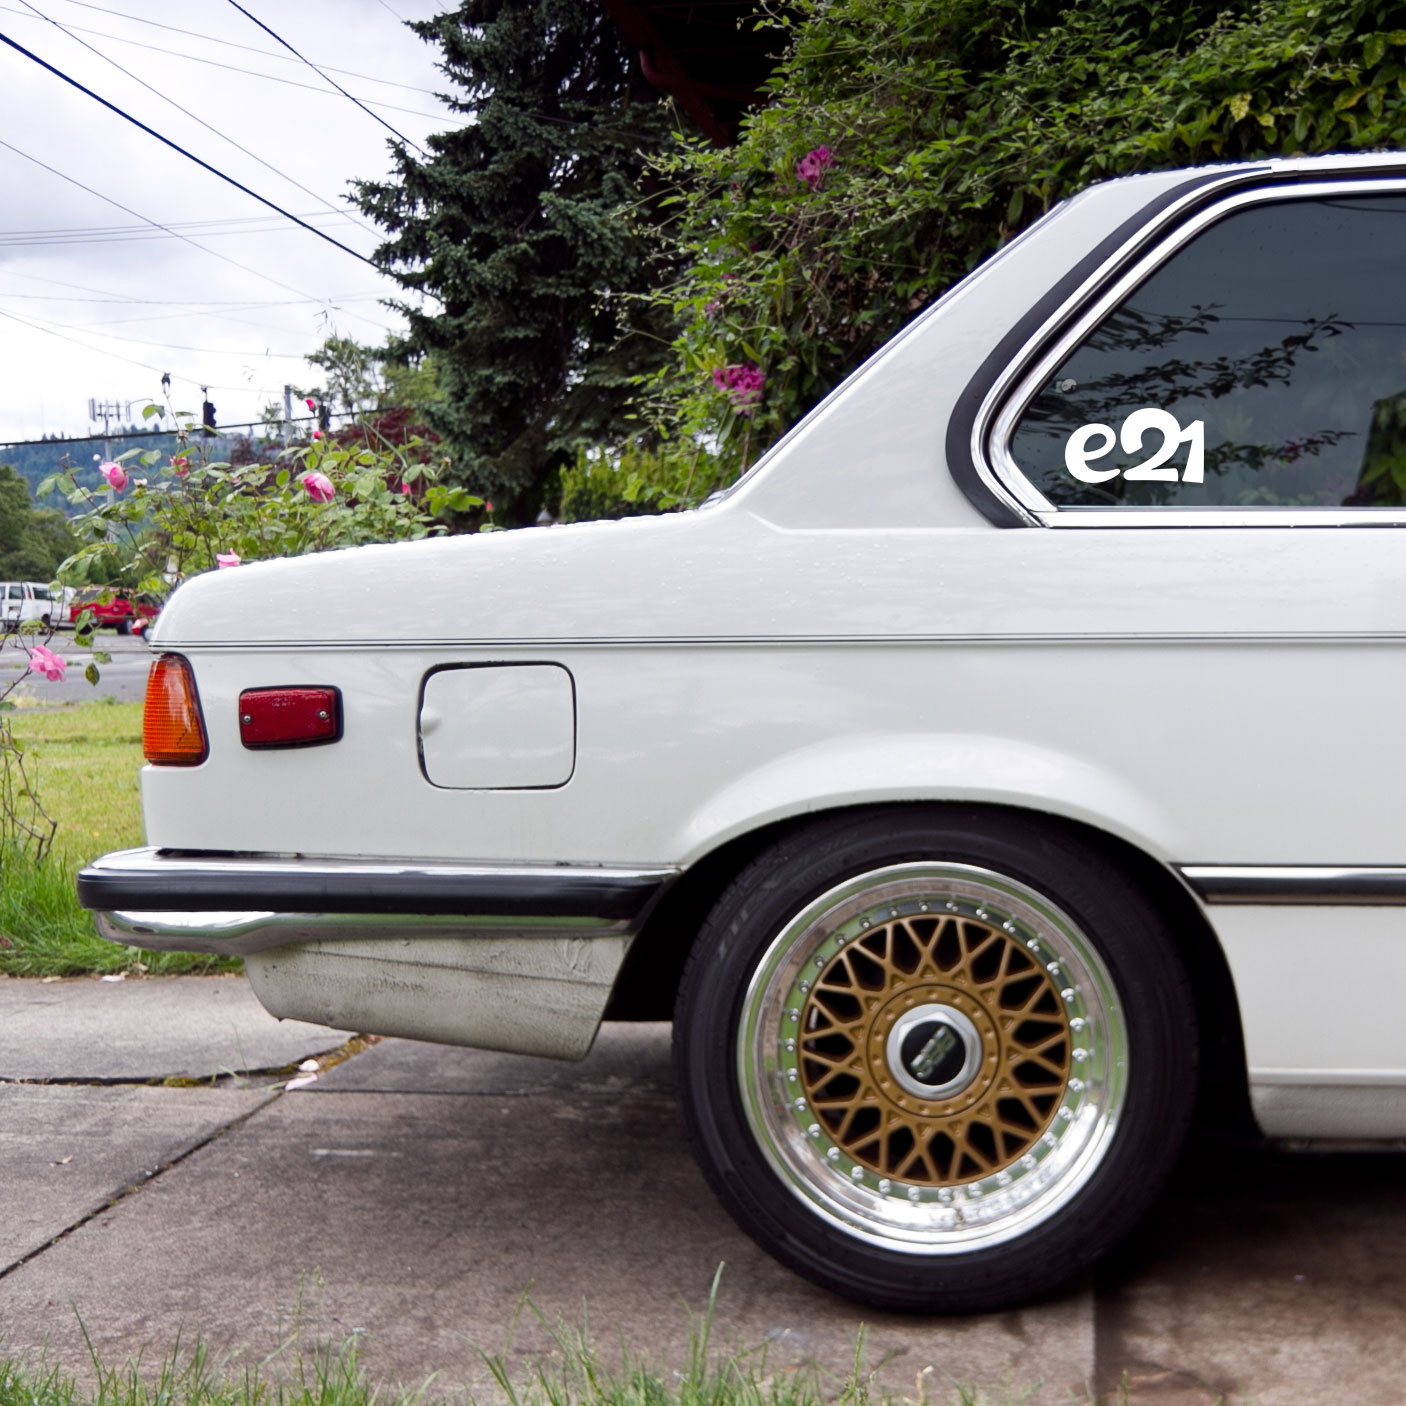 Vinyl e21 sticker for BMW cars